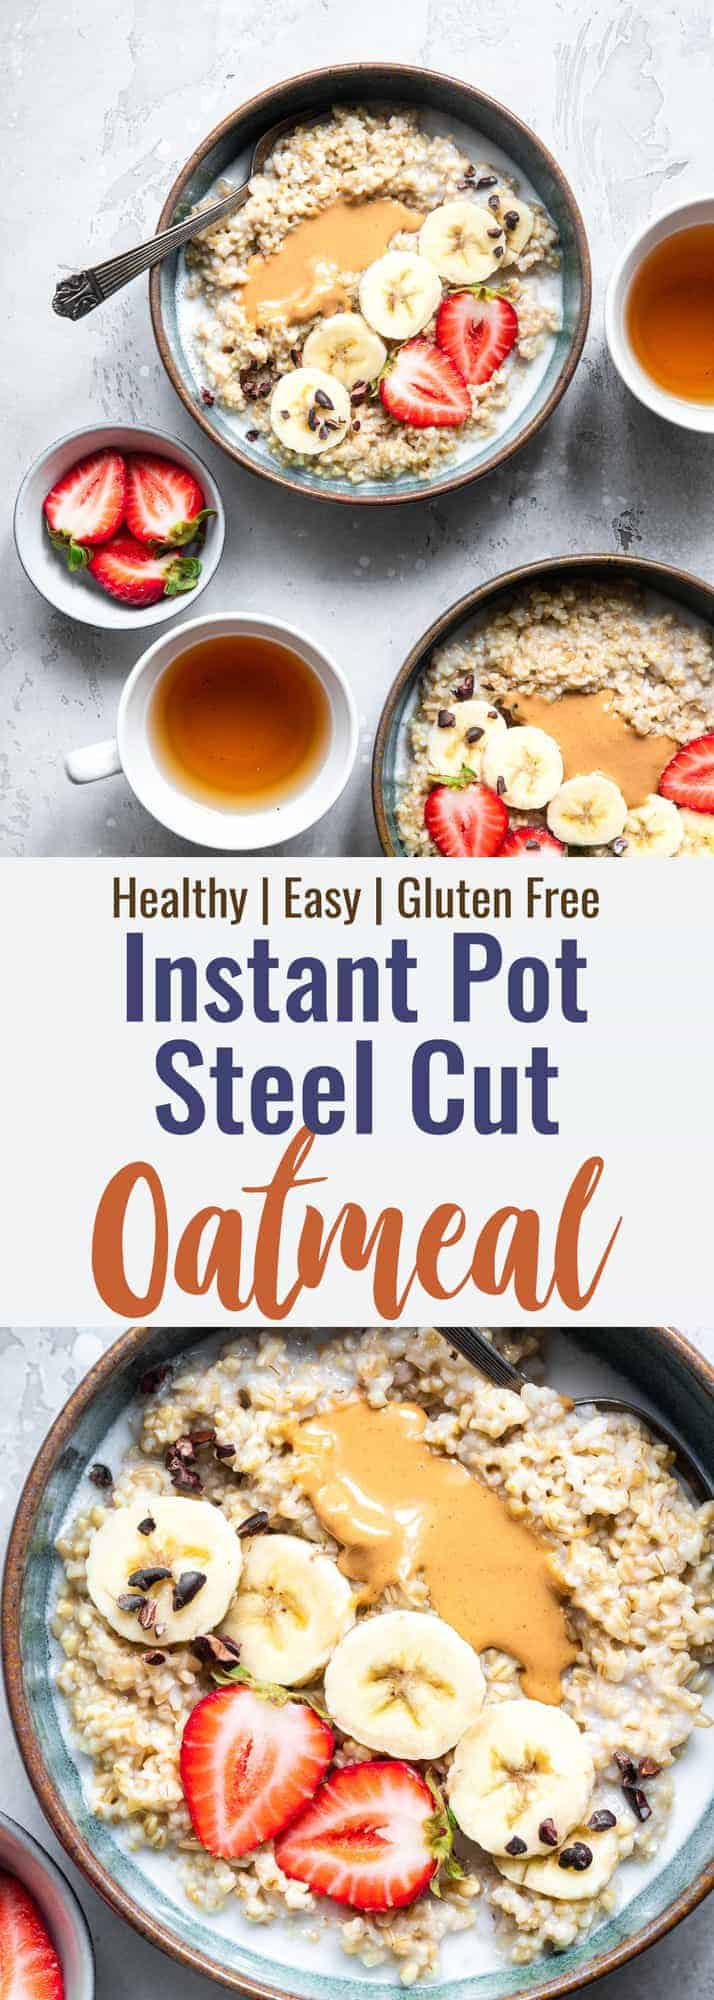 Collage image of 2 images showing instant pot oats